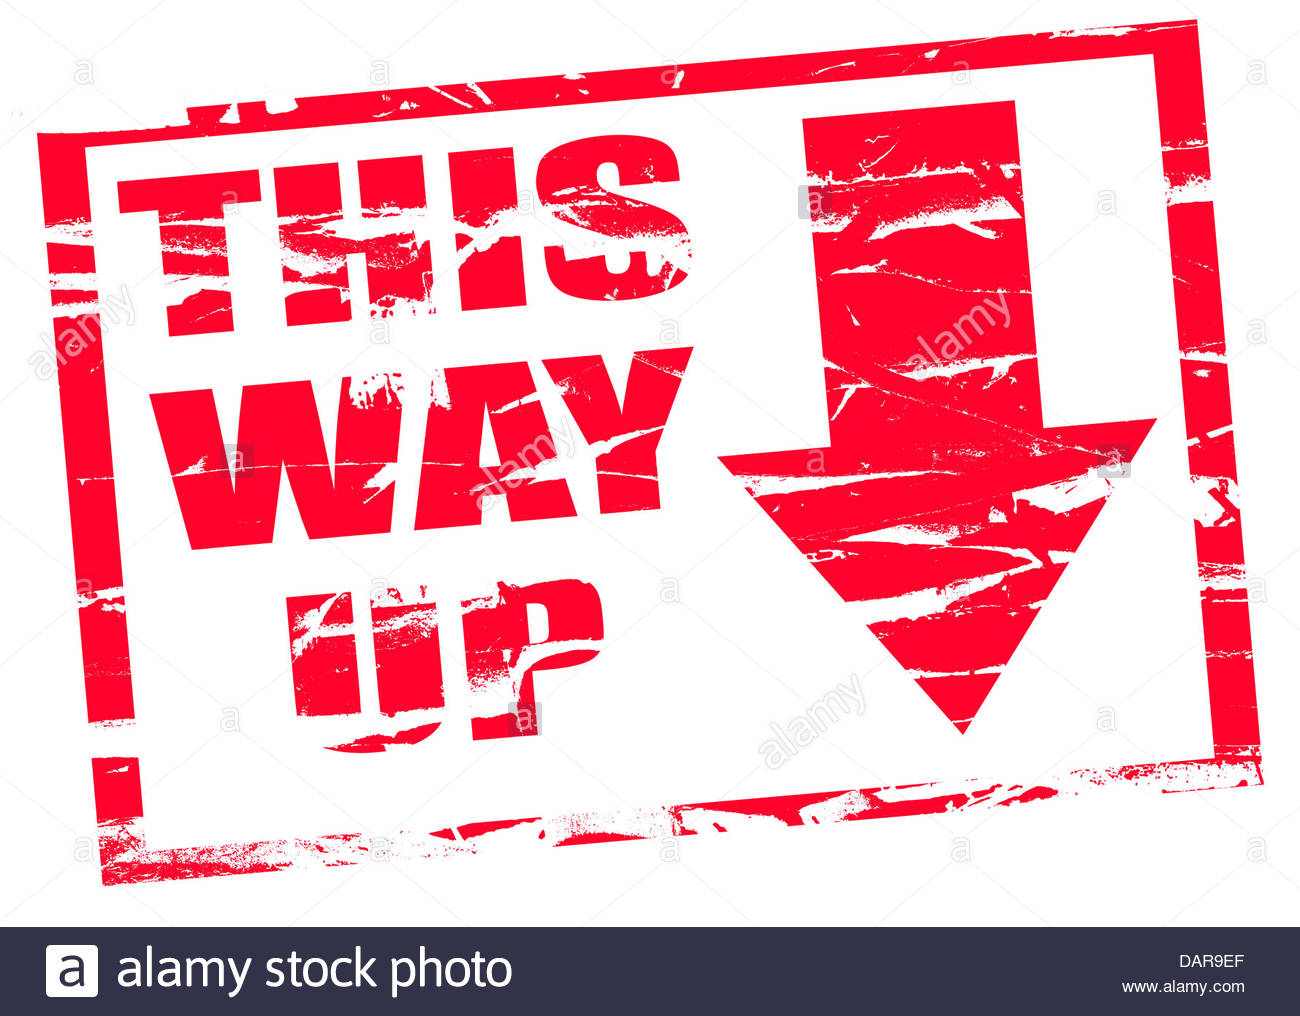 Digital composite Rubber stamp. This way up, upside down - Stock Image